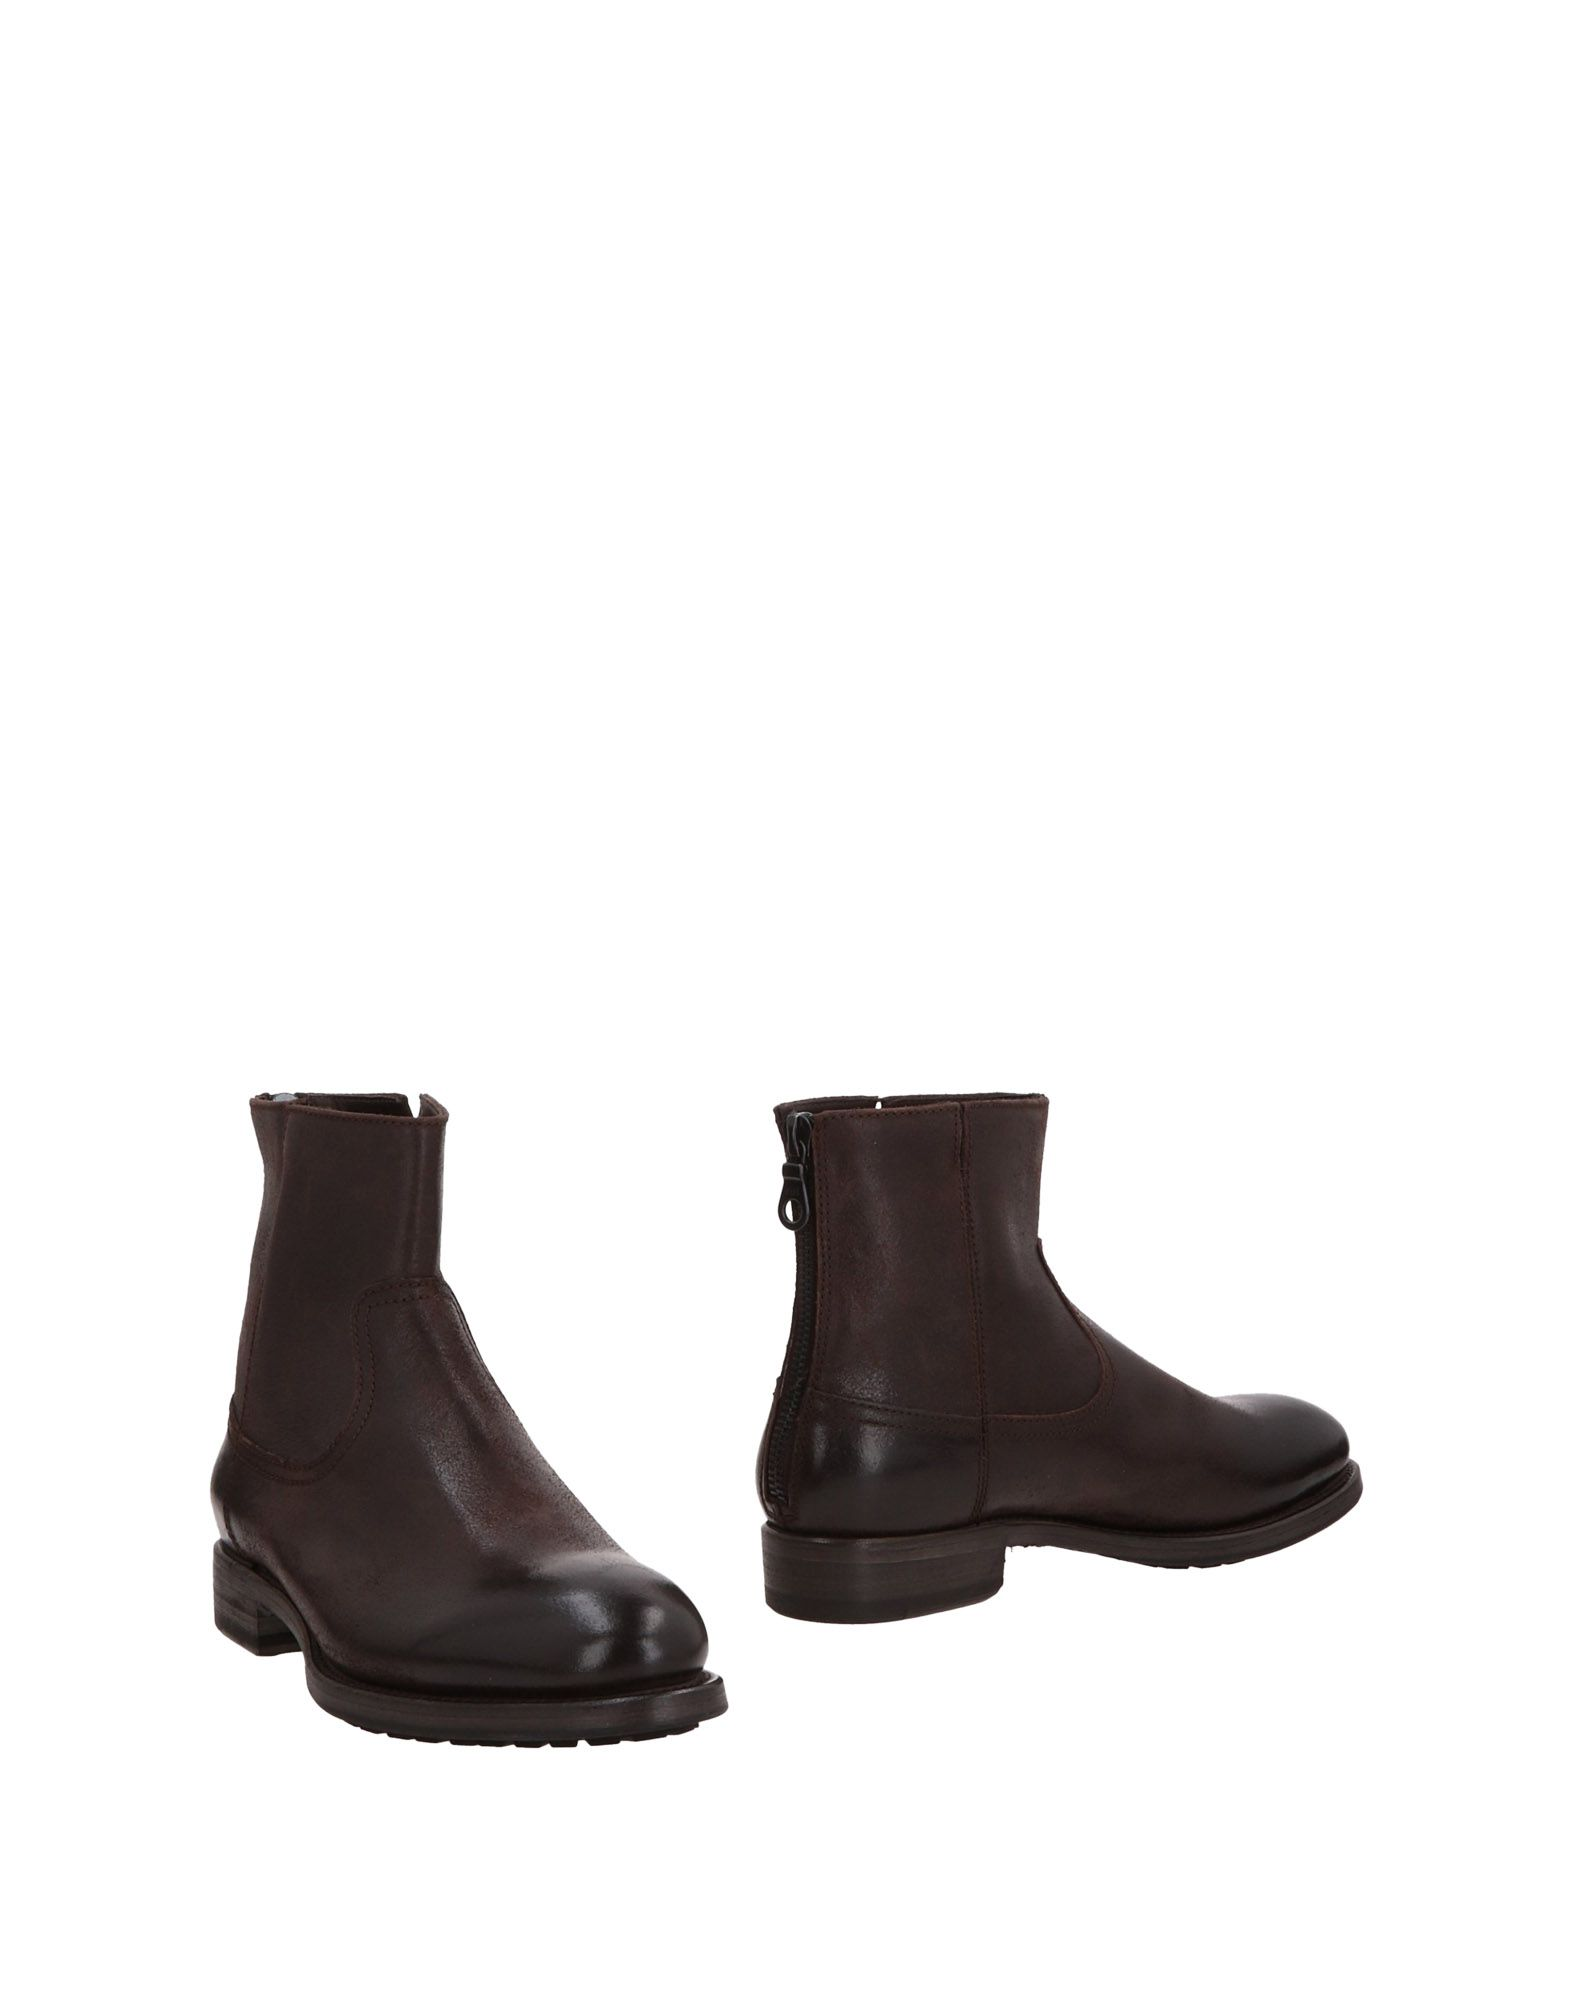 PROJECT TWLV Boots in Dark Brown